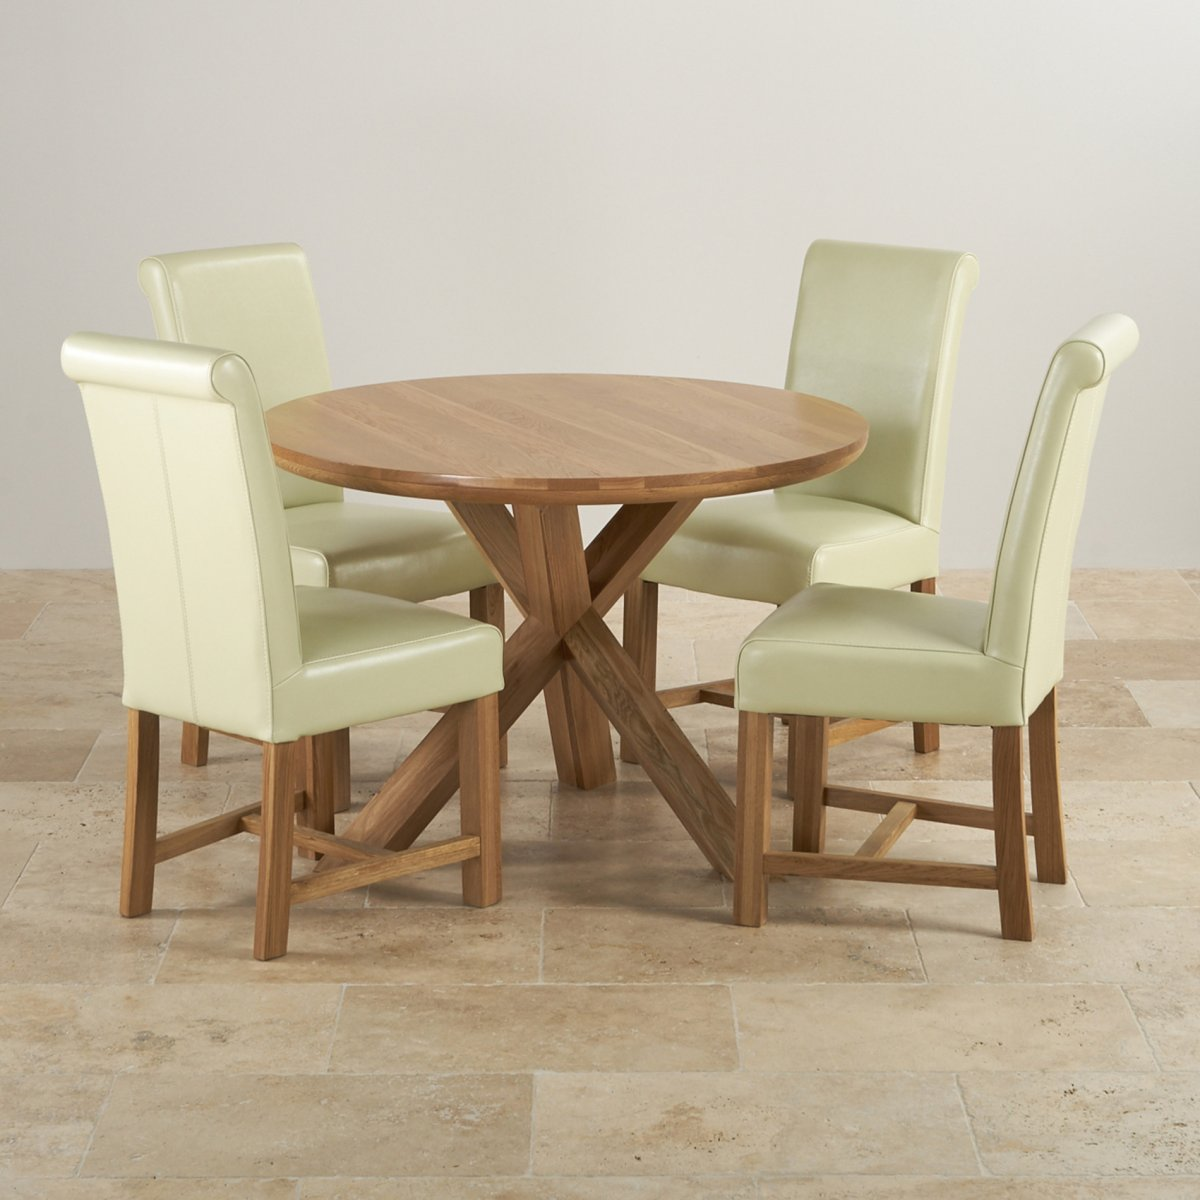 Natural oak round dining set table 4 cream leather chairs for Round dining table for 4